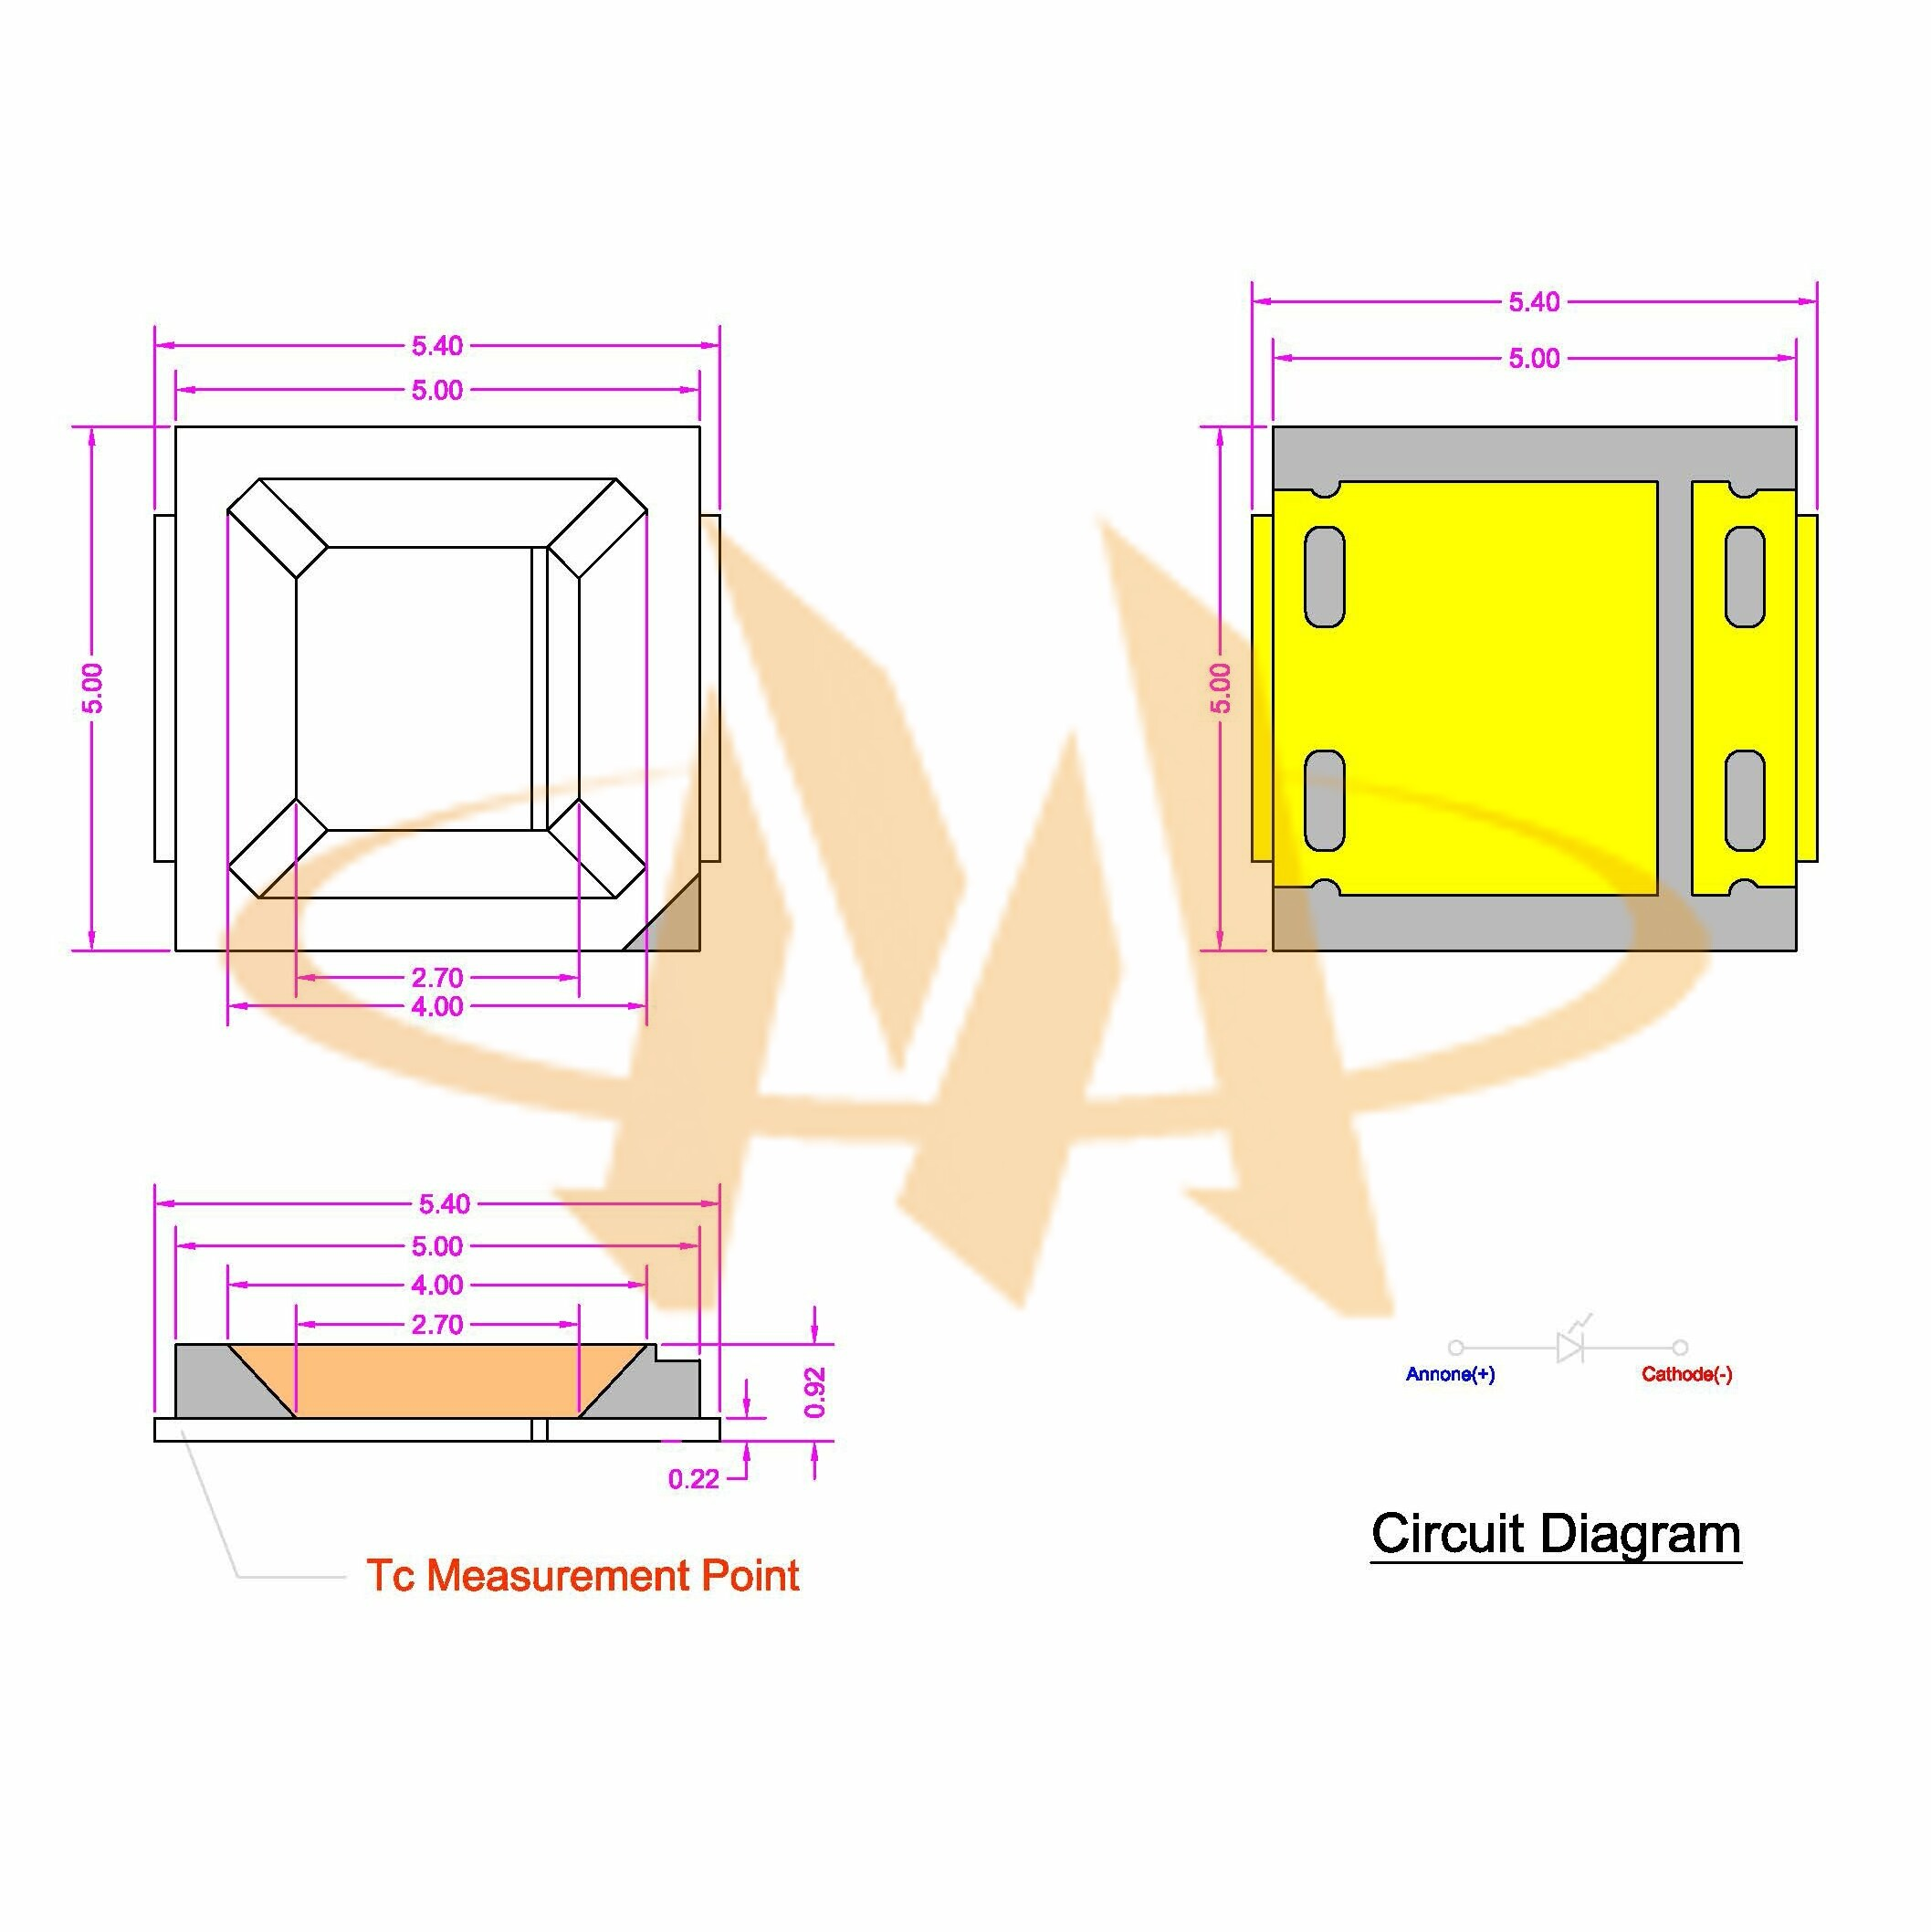 Smd Led Circuit Diagram Schematic Diagrams High Power Driver Using Lnk403eg Mlt 5054 03350dxx Components Blinking Mechanical Dimensions